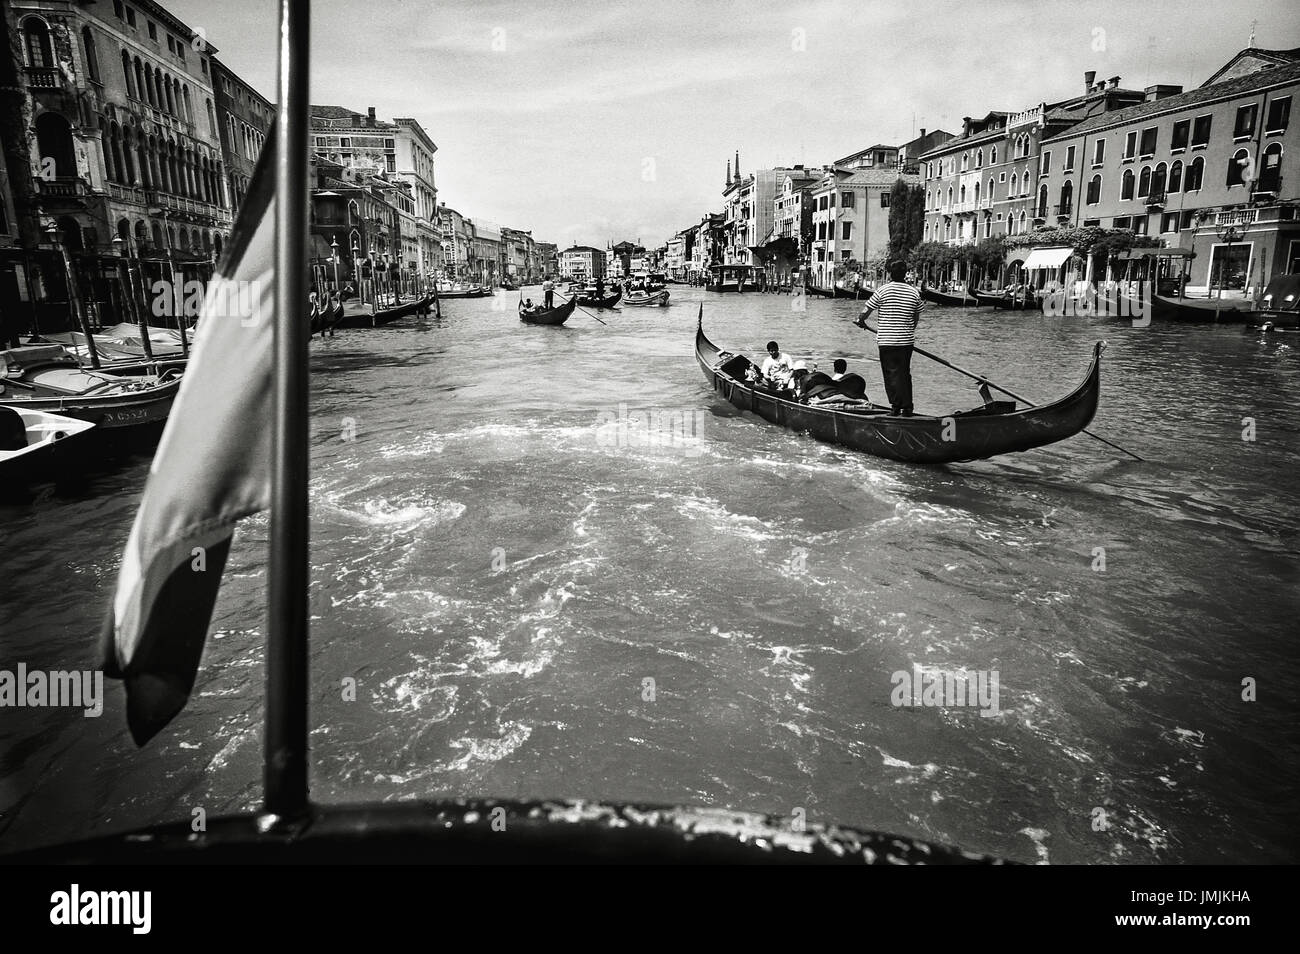 Image of the Grand Canal from a 'Vaporetto', a boat that is used quite in the same way as an urban bus in - Stock Image